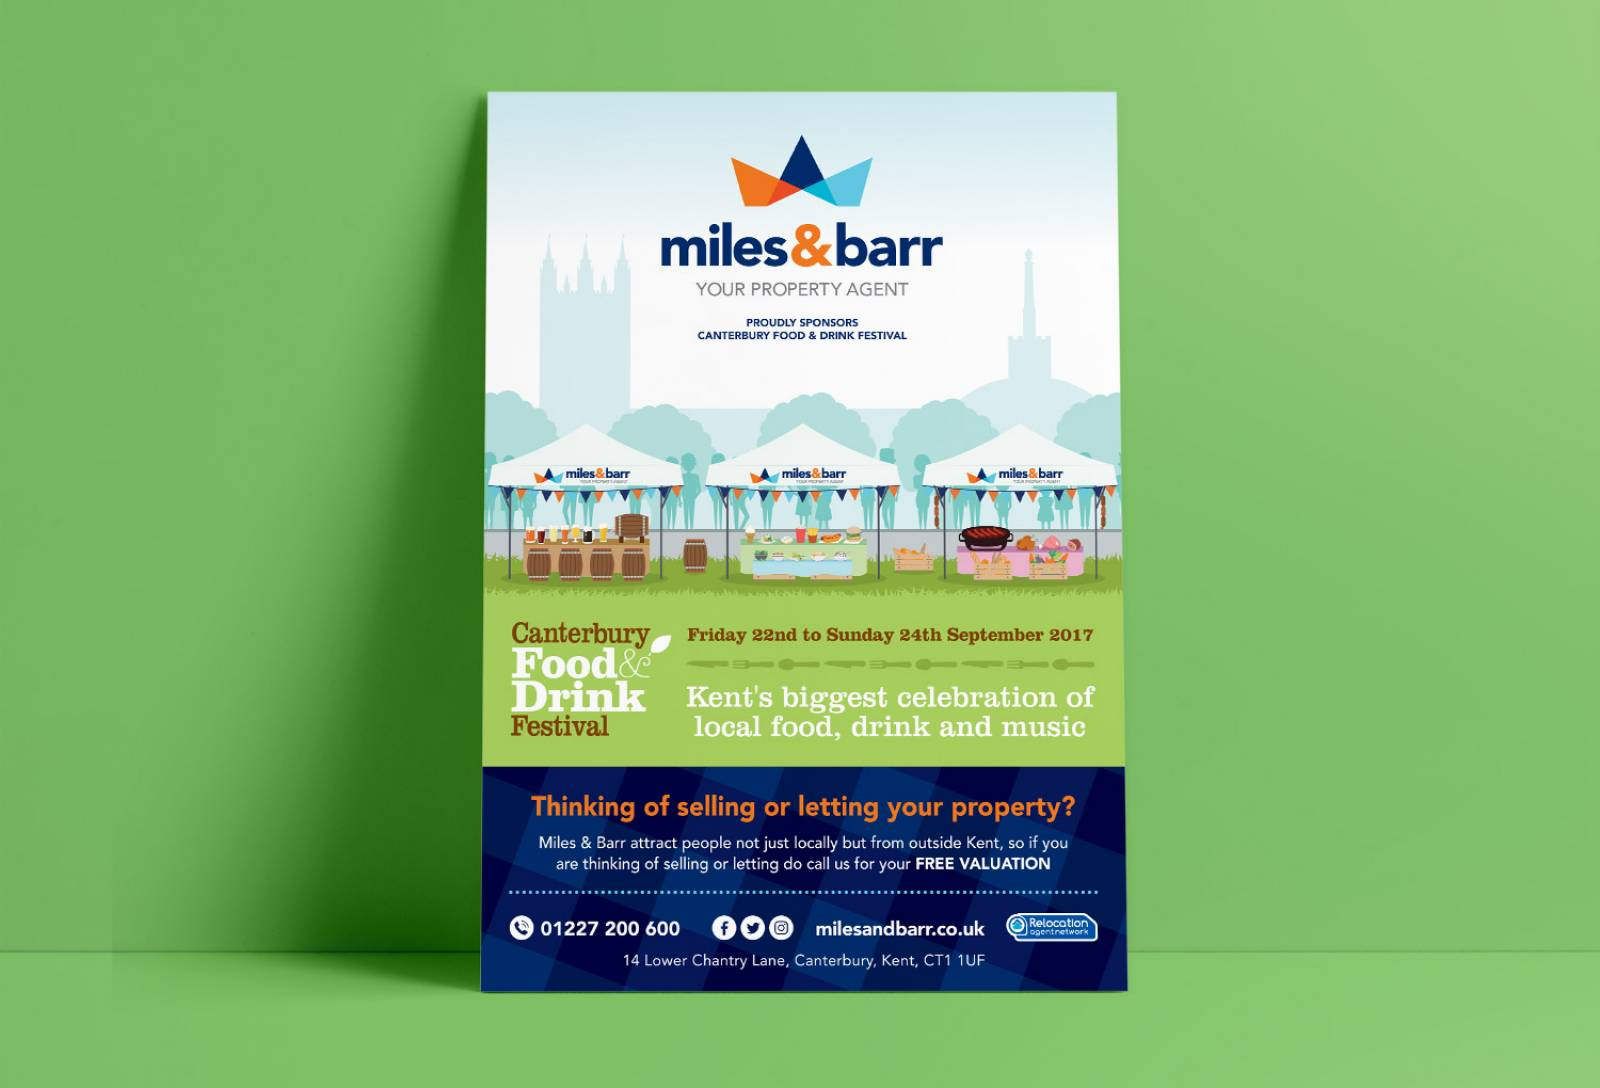 Miles-and-barr-food-drink-Graphic-Design-Agency-Canterbury.jpg